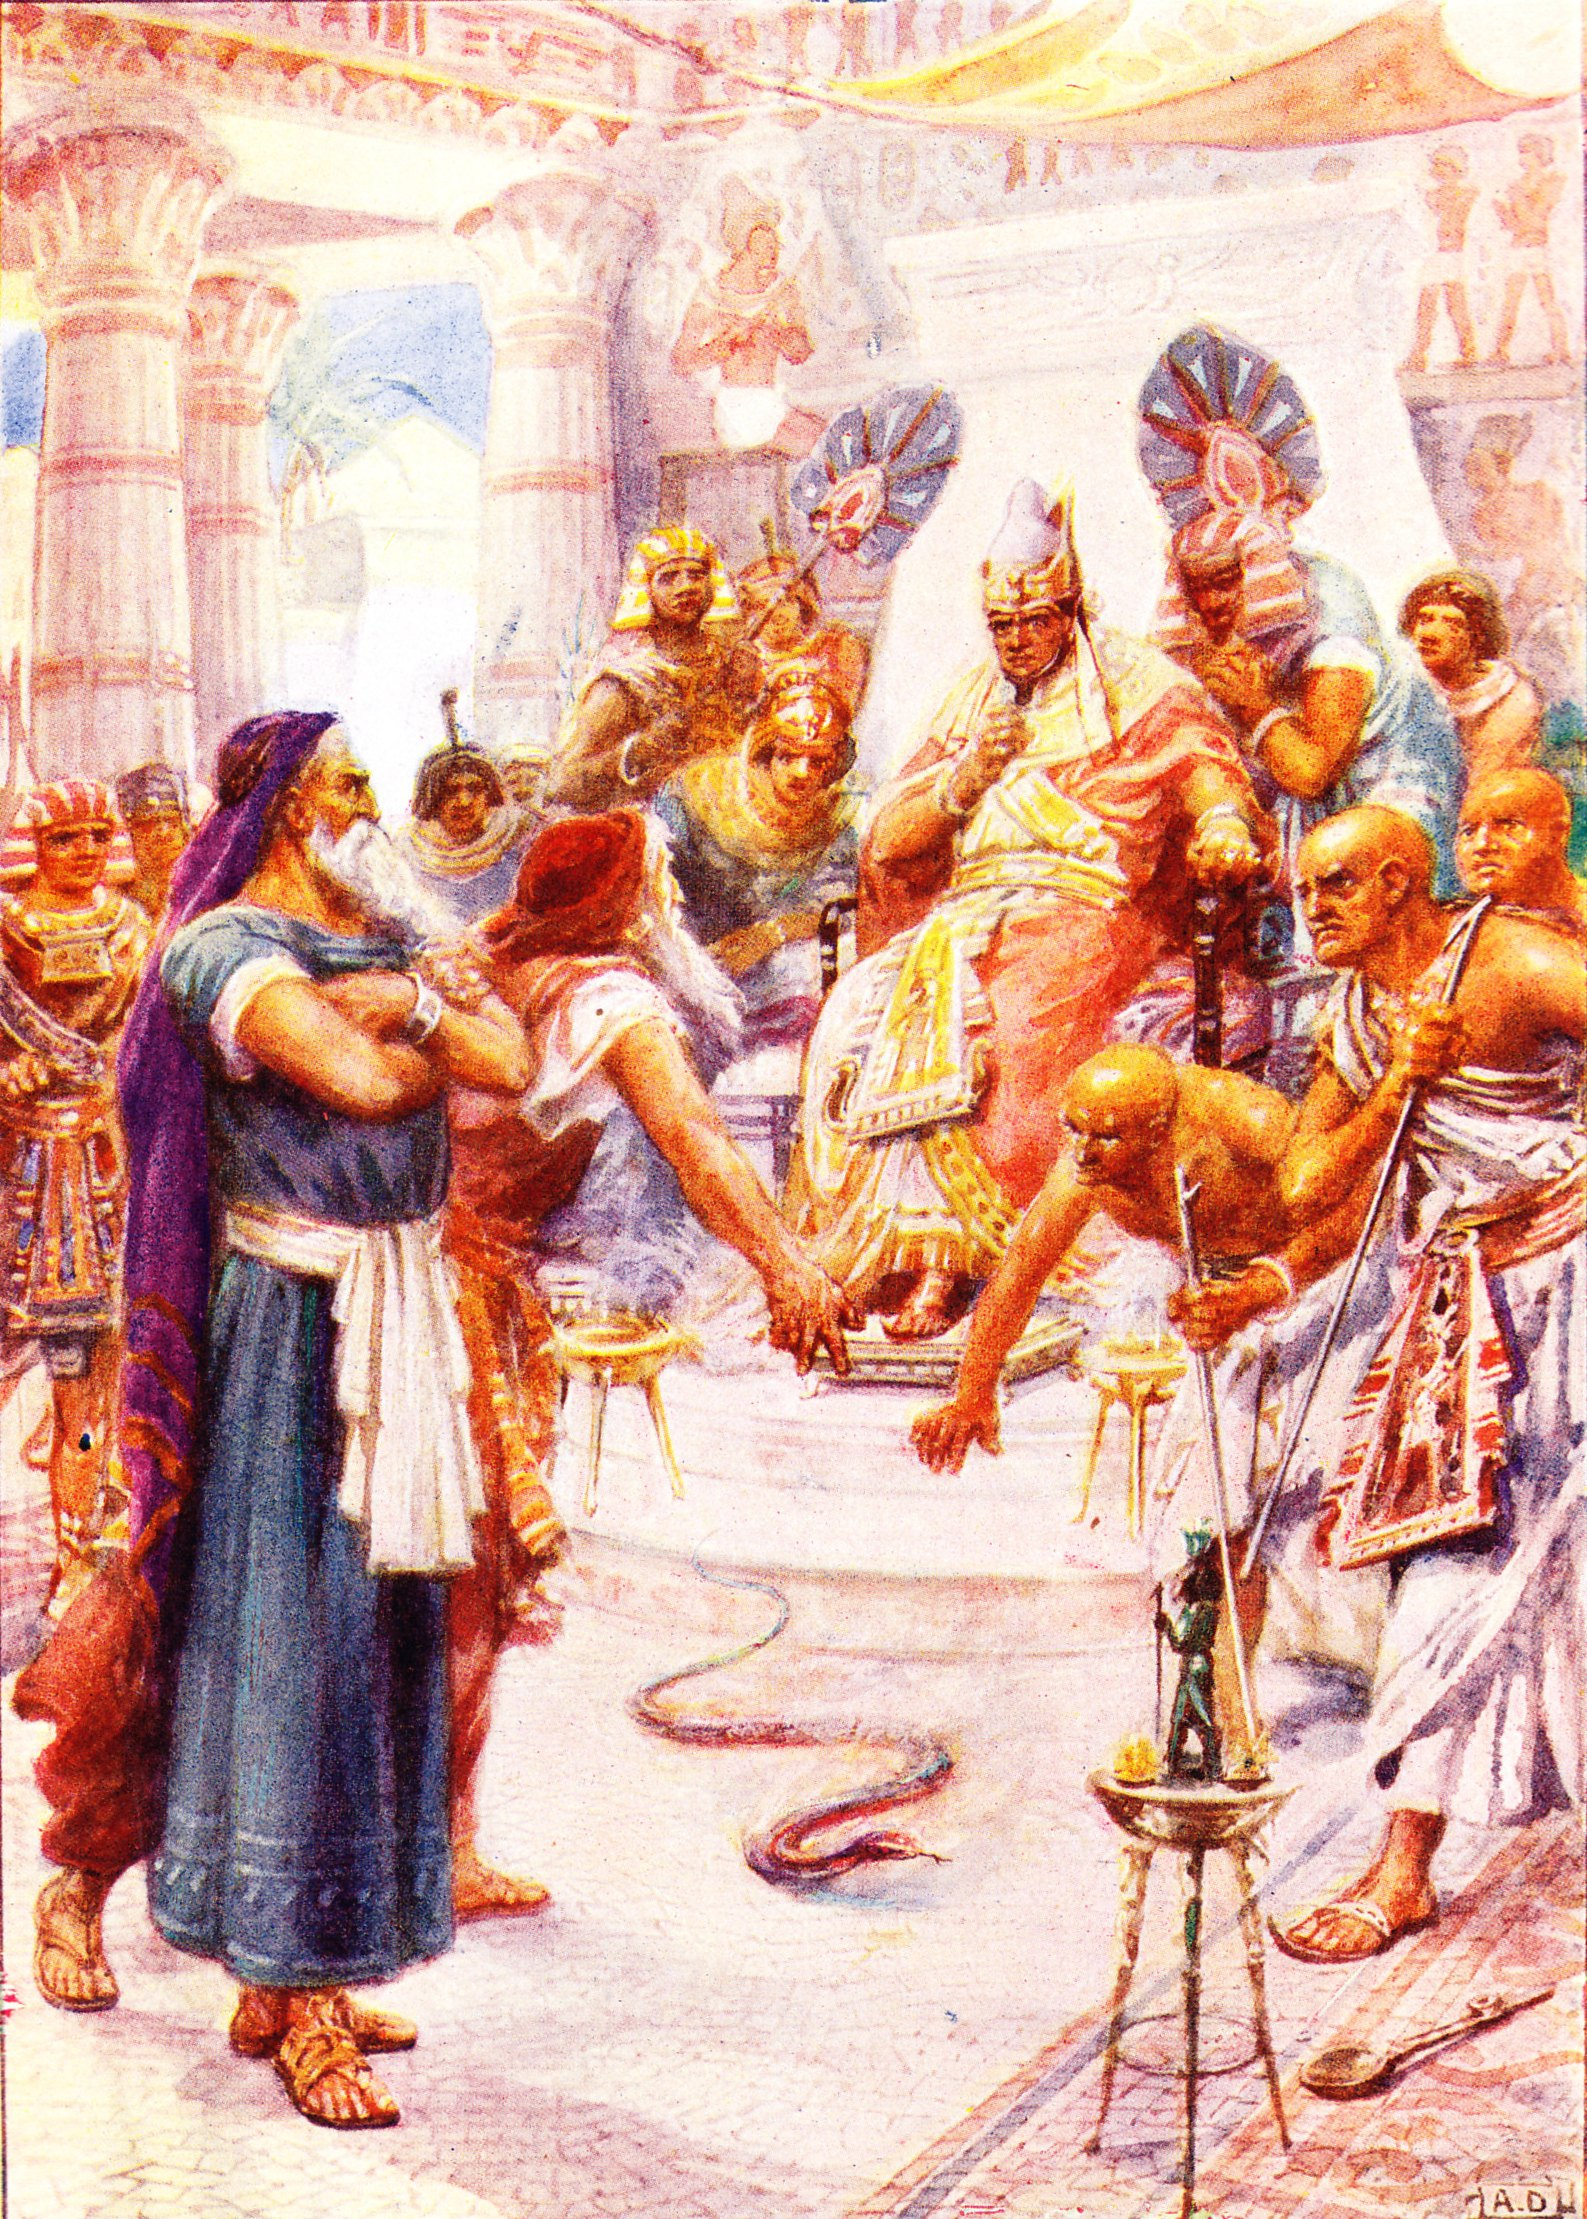 Moses story with pictures Exodus (23) - Free Bible images: Find a story